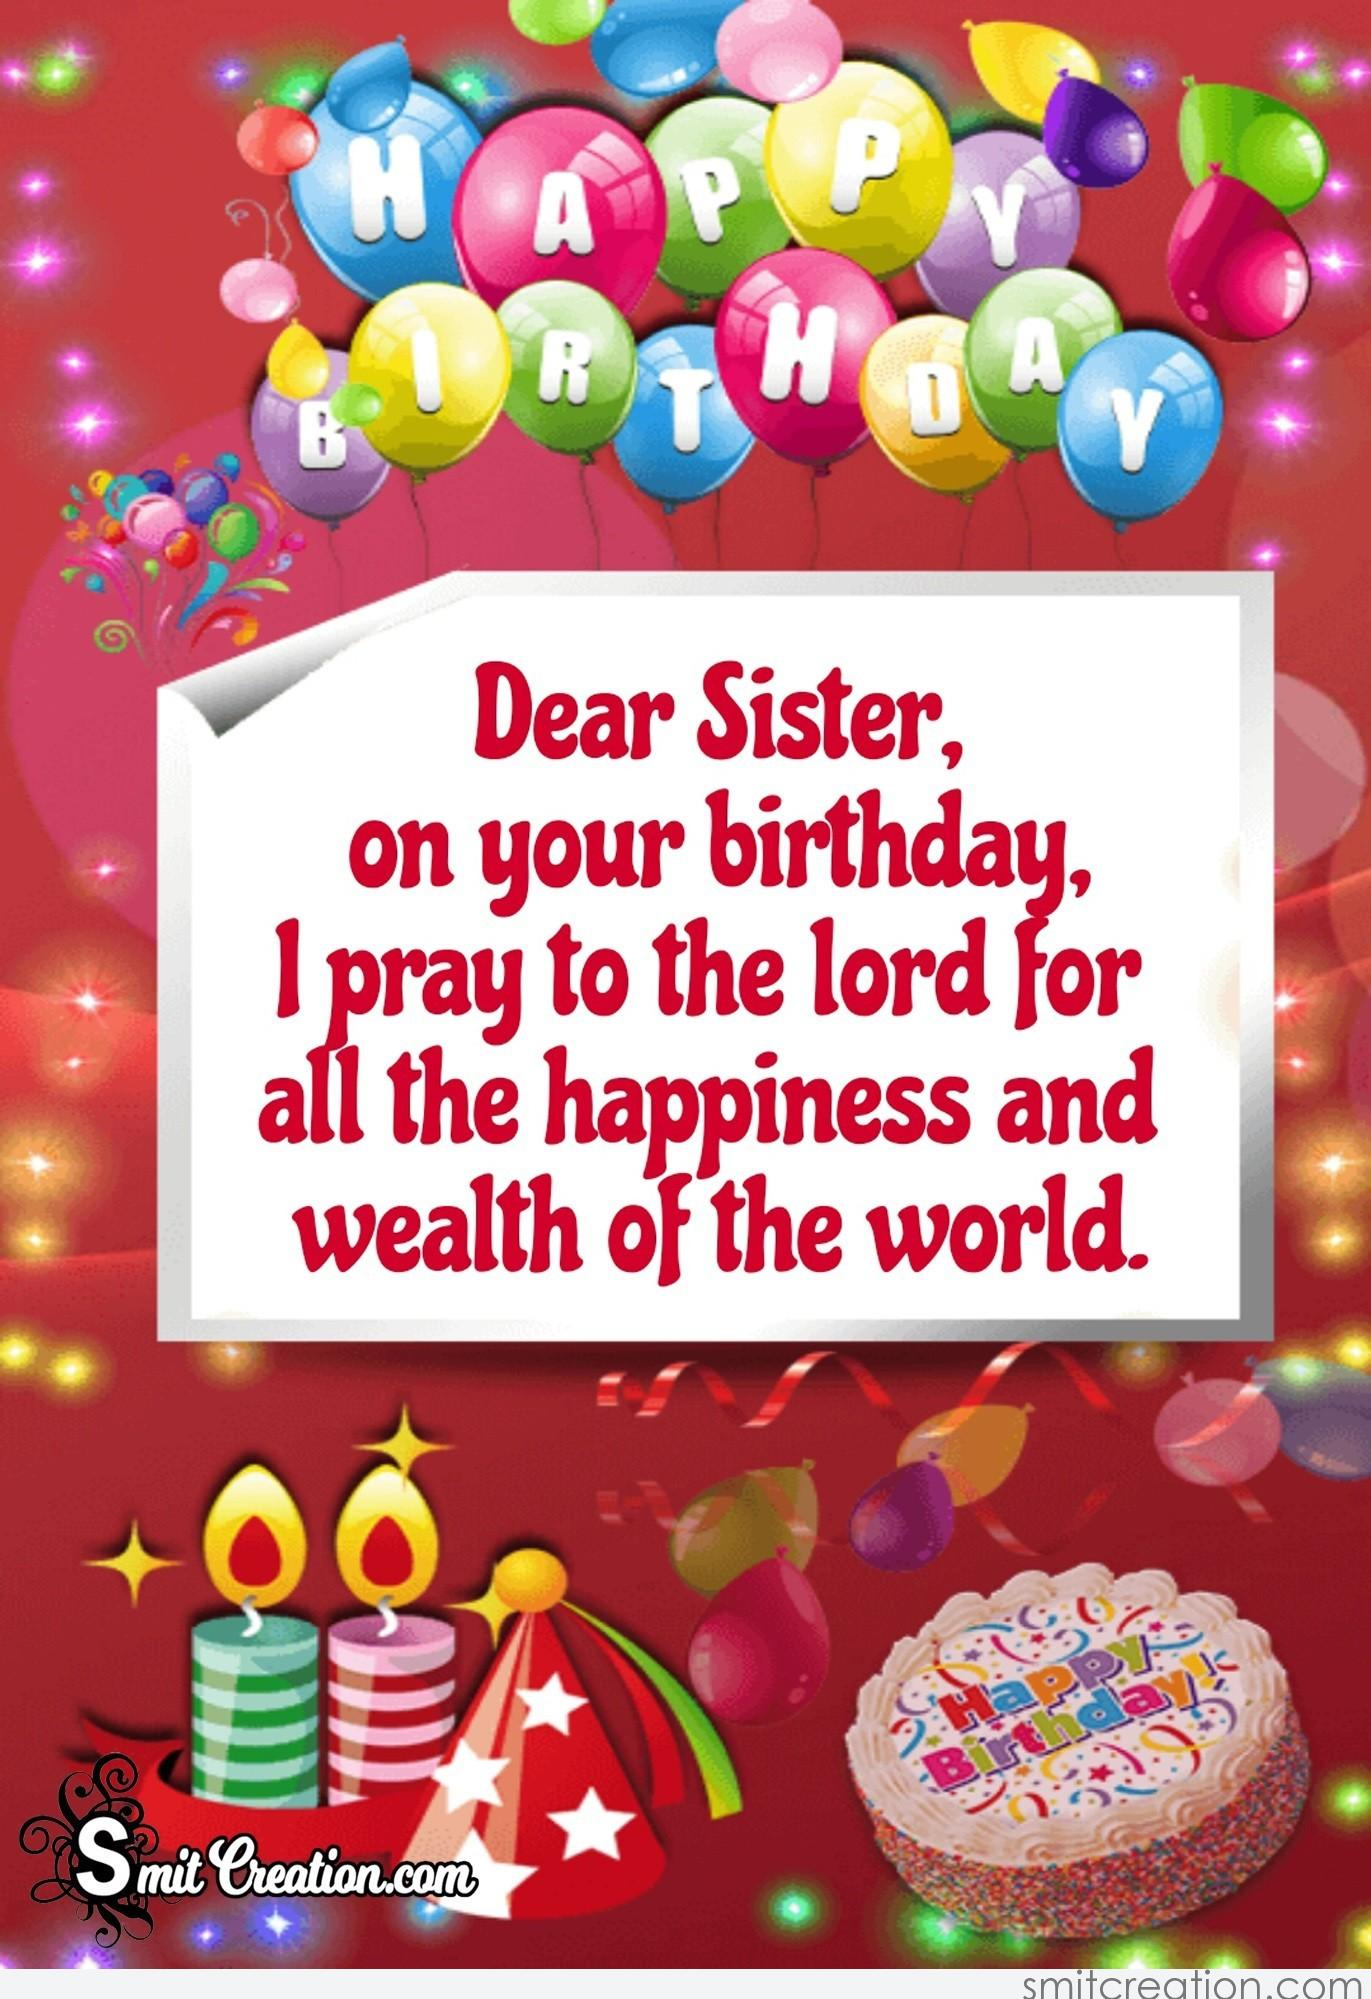 Birthday Wishes For Sister Pictures And Graphics Smitcreation